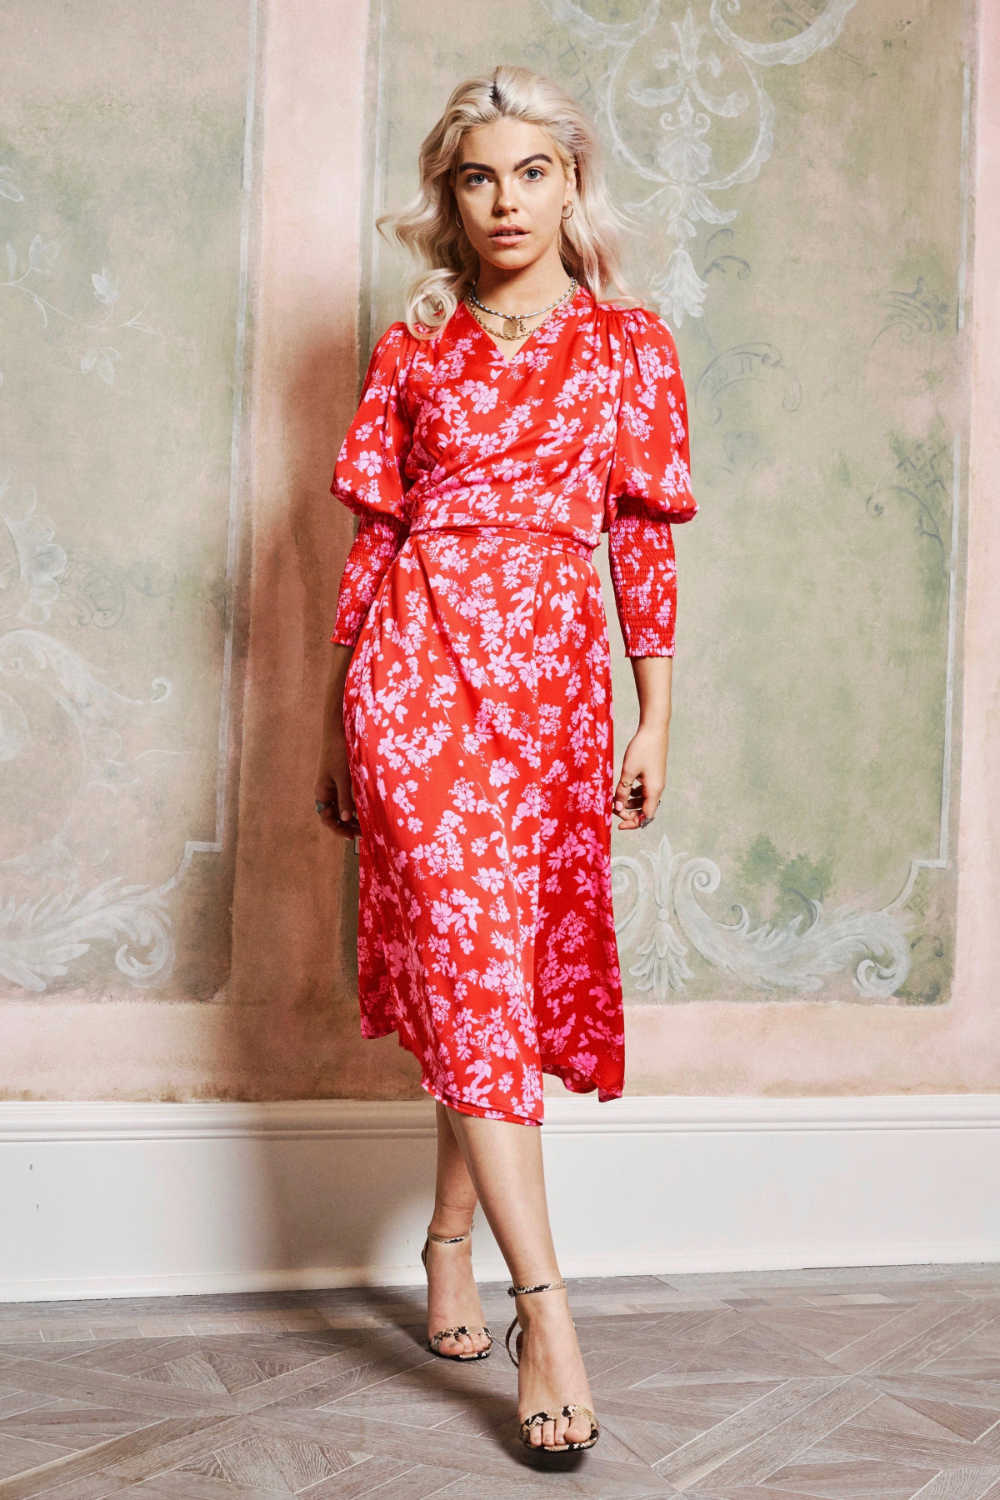 Red Pink Print Victoria Dress Never Fully Dressed In 2020 Victoria Dress Dresses Pink Print